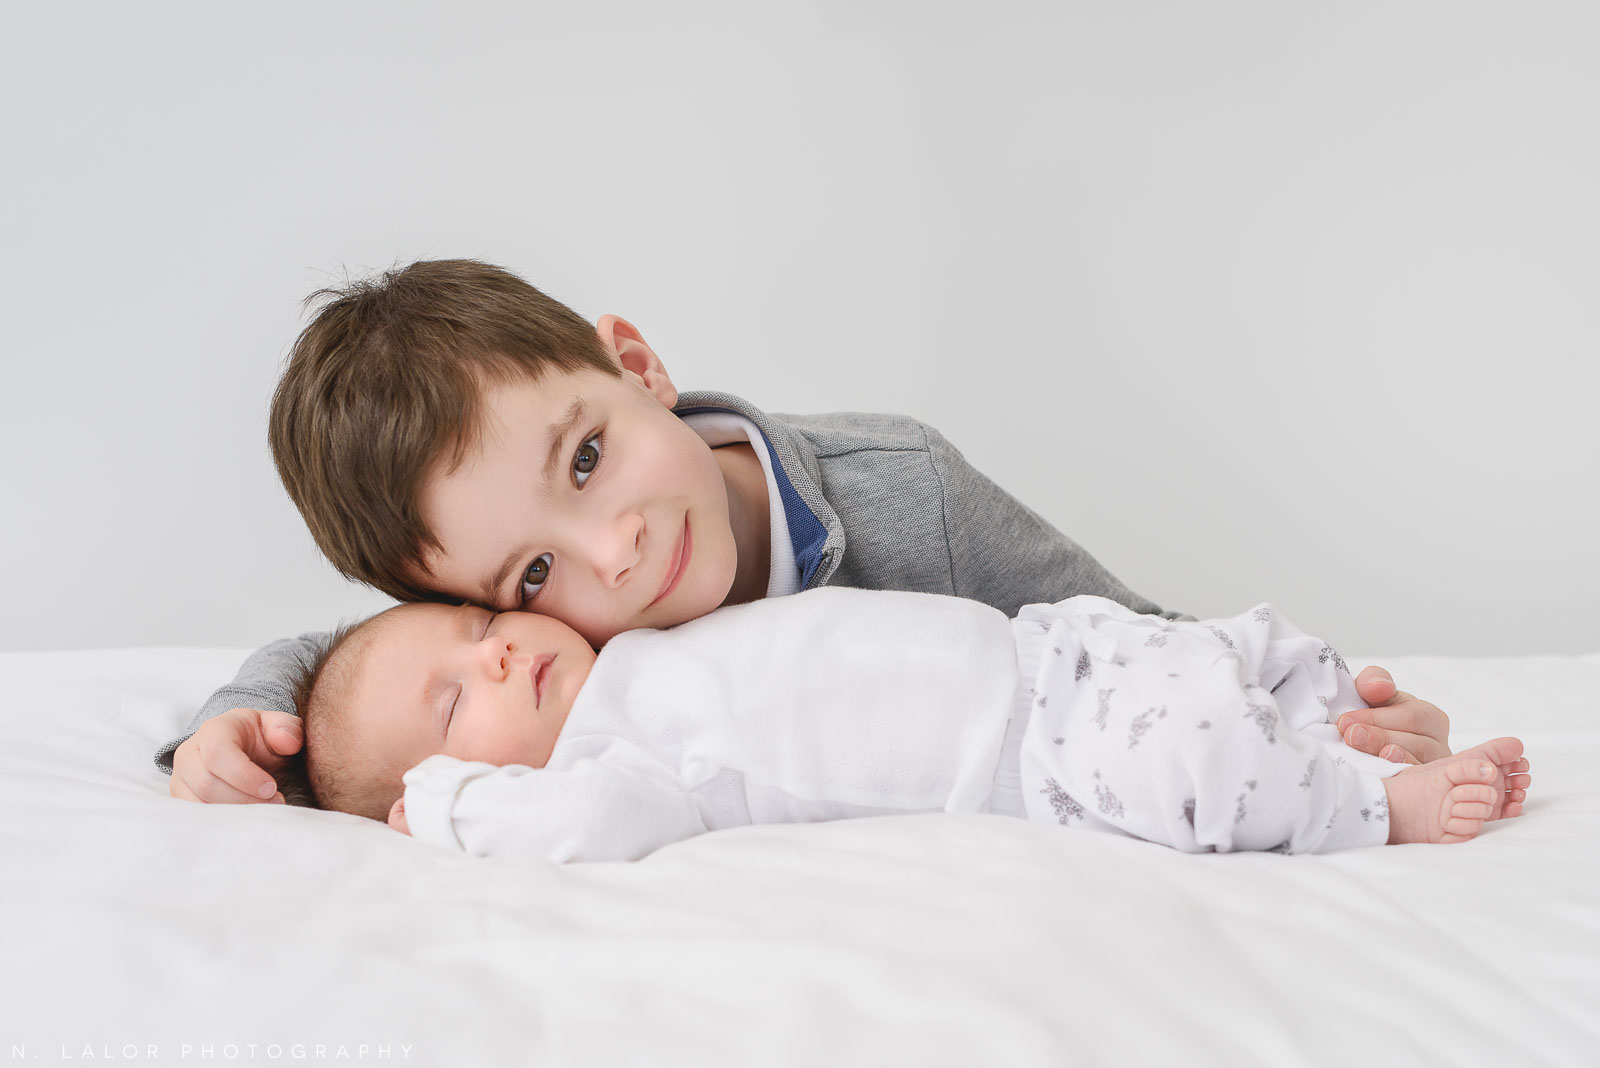 08-brother-newborn-family-photography-session.jpg